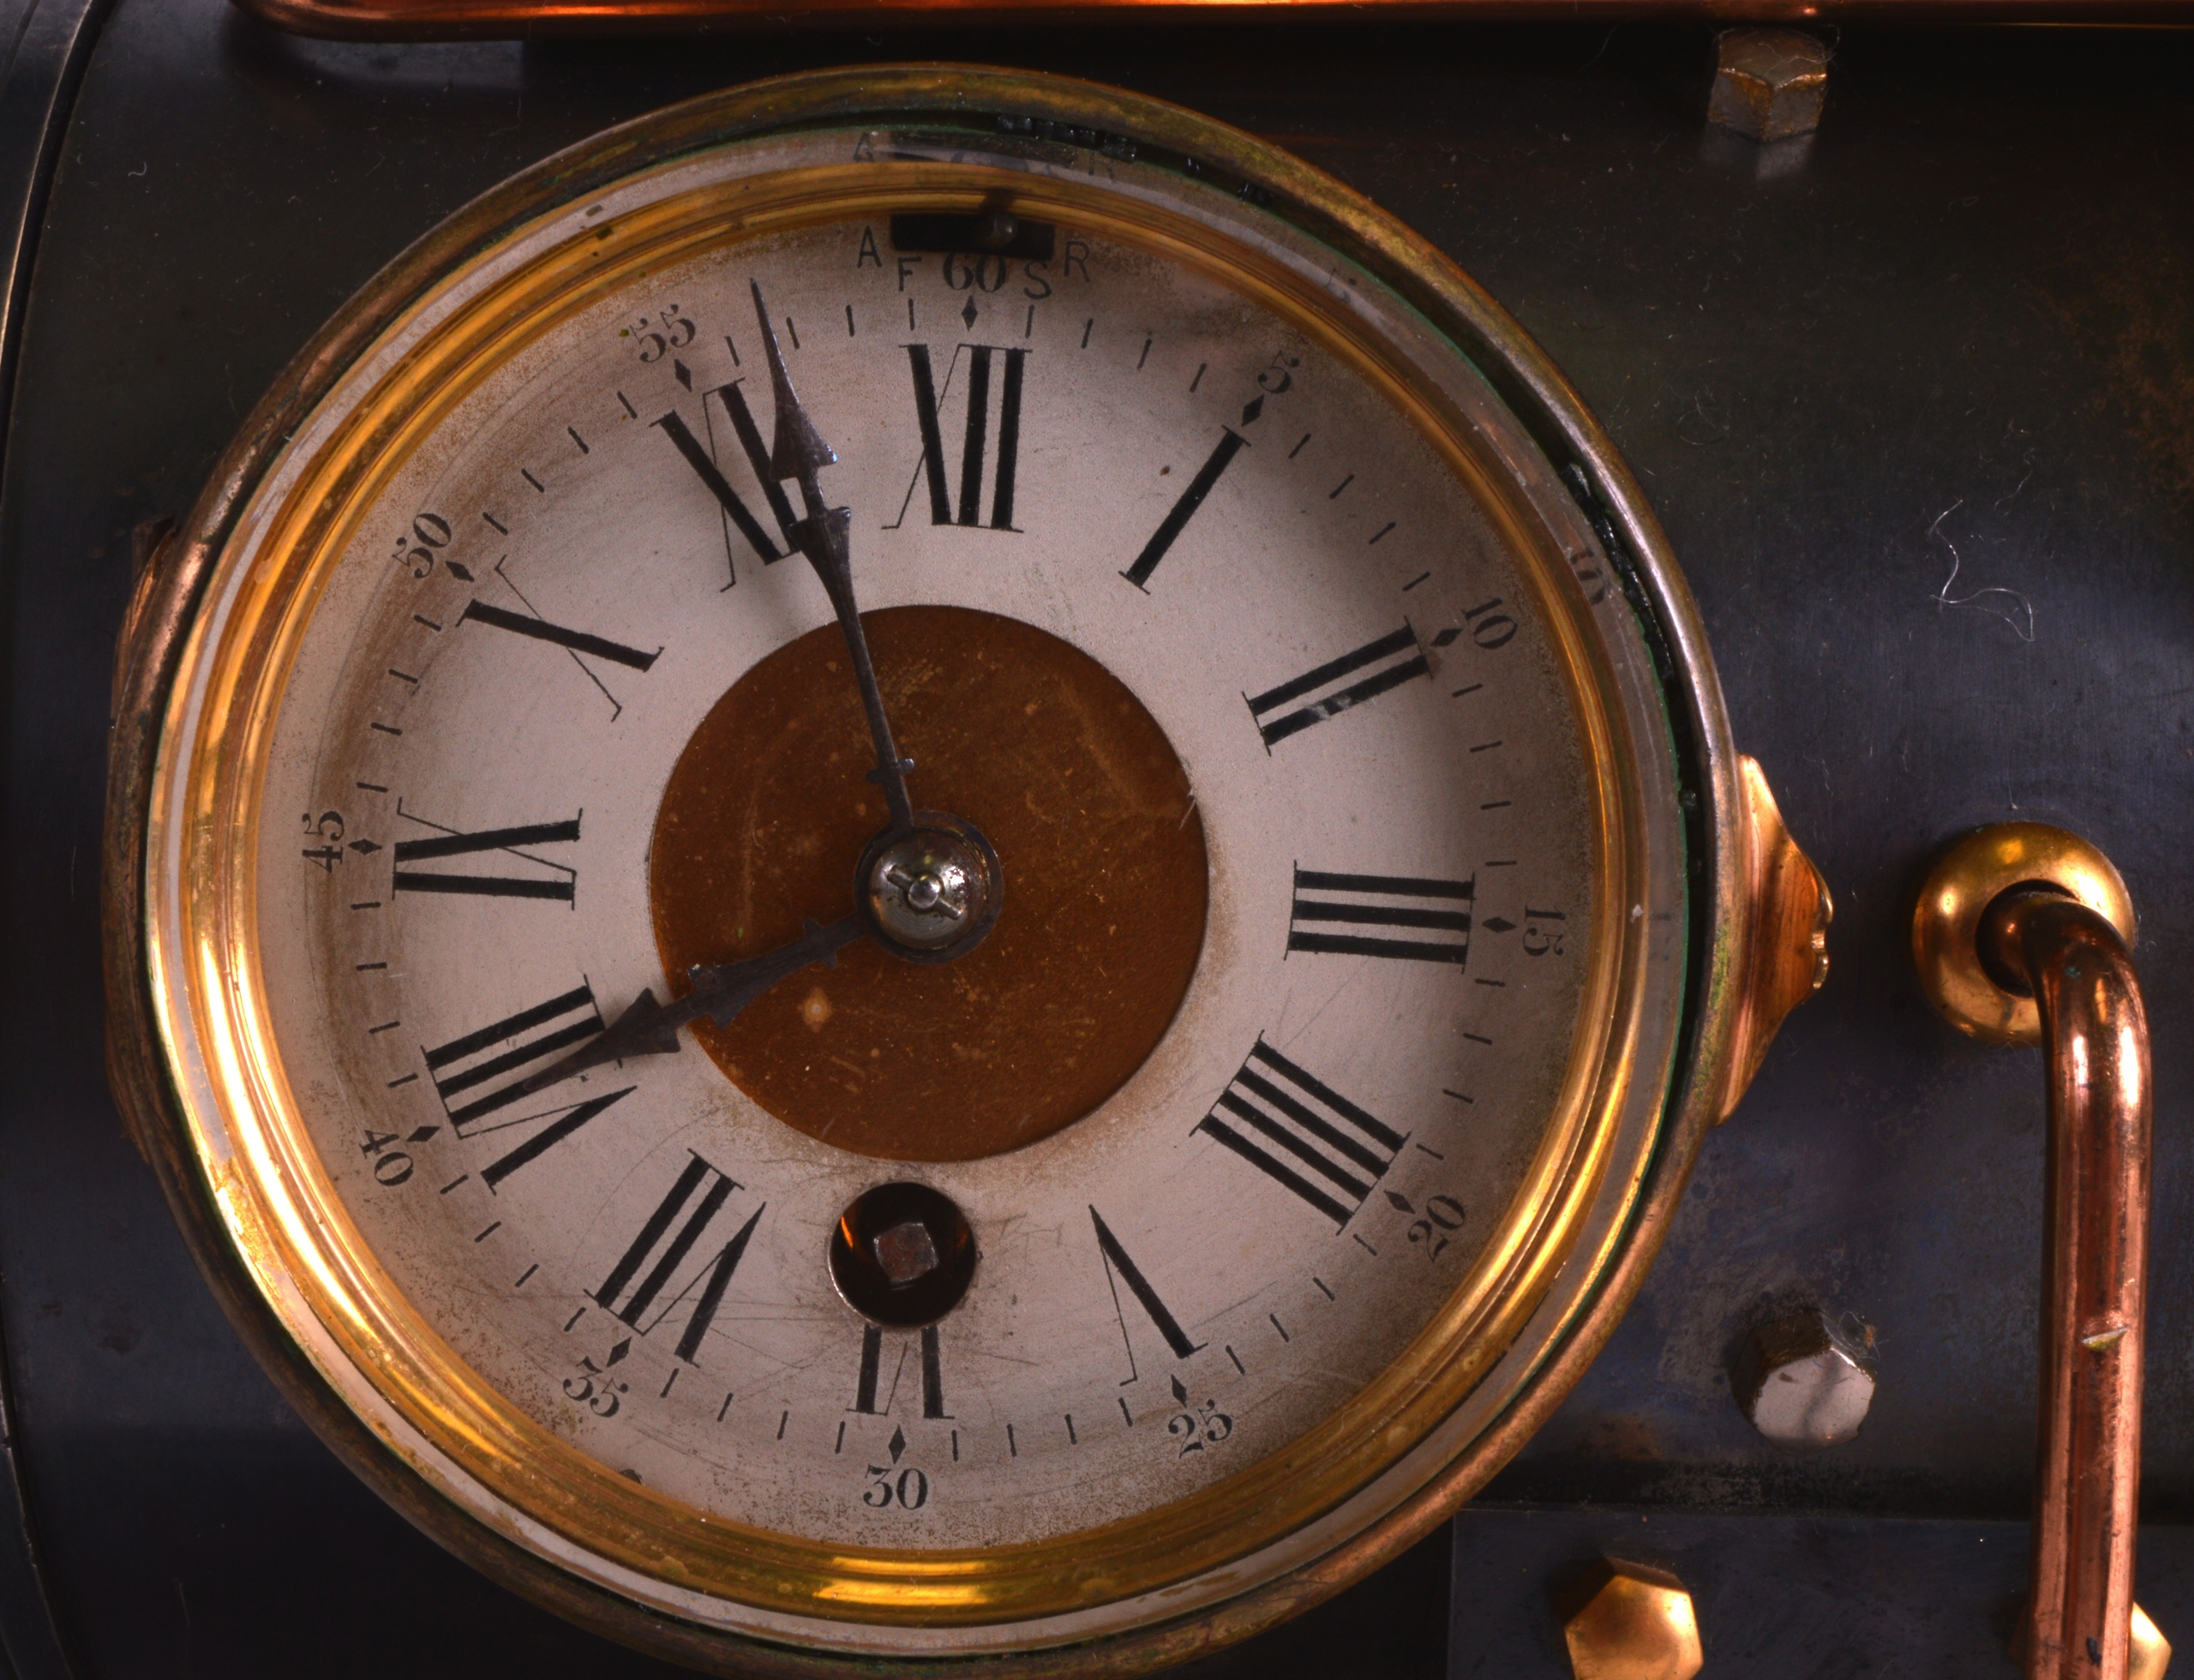 A FINE 19TH CENTURY FRENCH INDUSTRIAL BOILER ENGINE CLOCK C1880 with Roman chapters and blued - Image 2 of 7